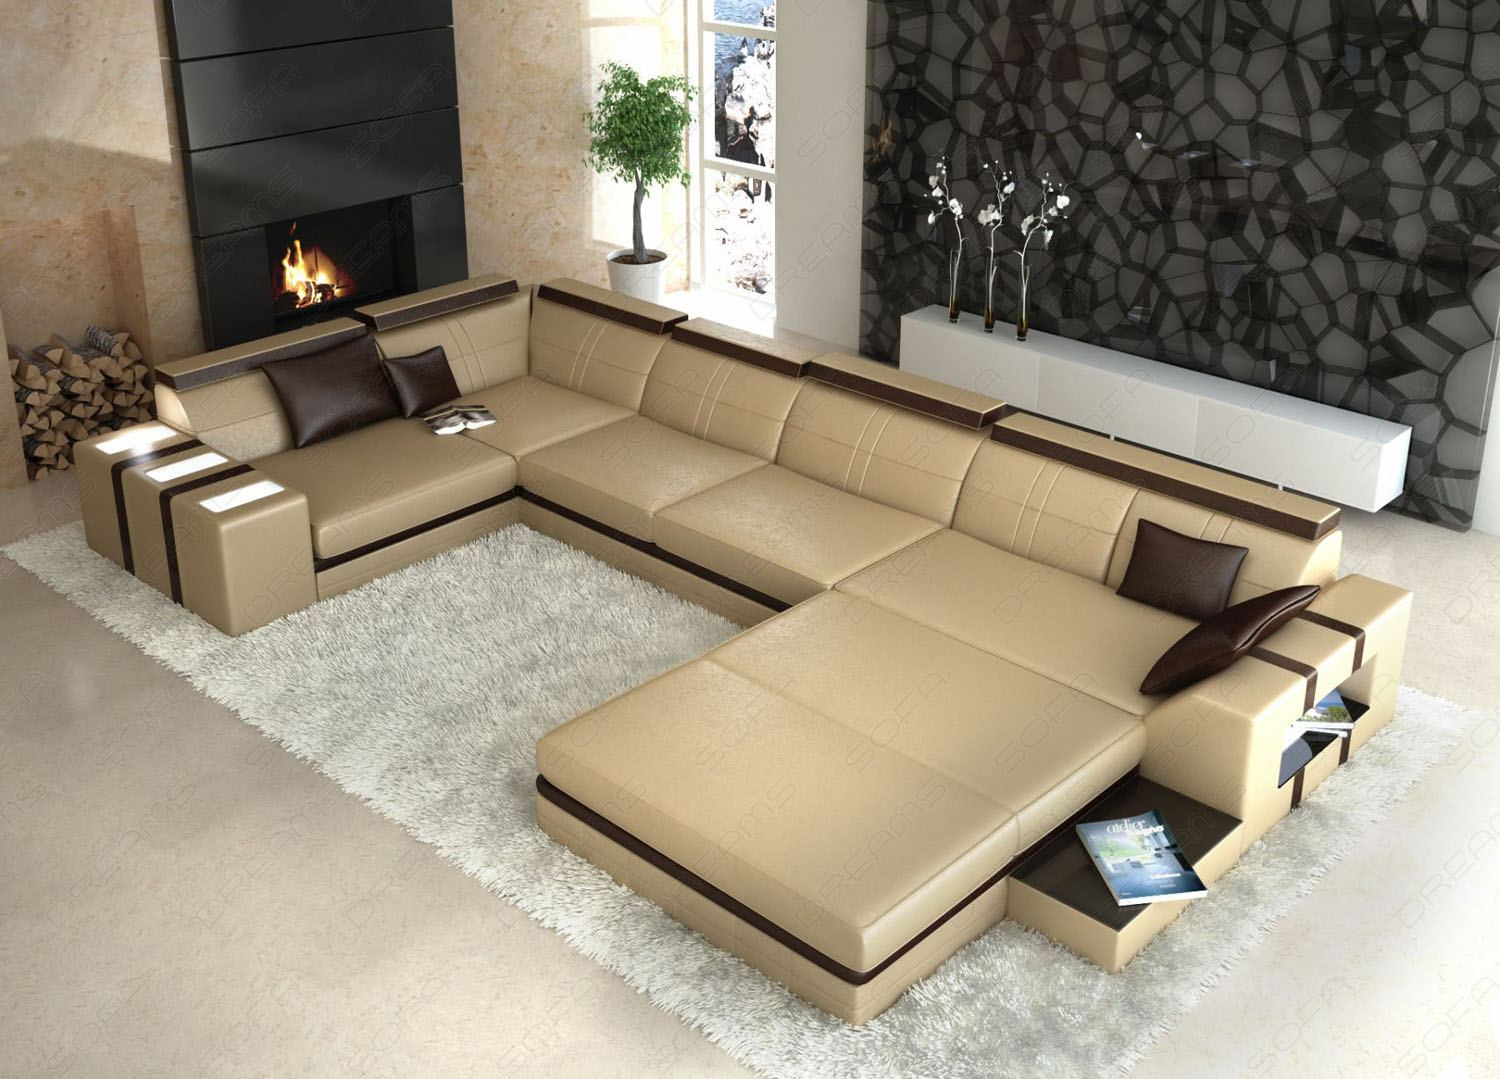 Couch braun beige best 25 couch ideas on pinterest xxl for Beiges sofa welche wandfarbe